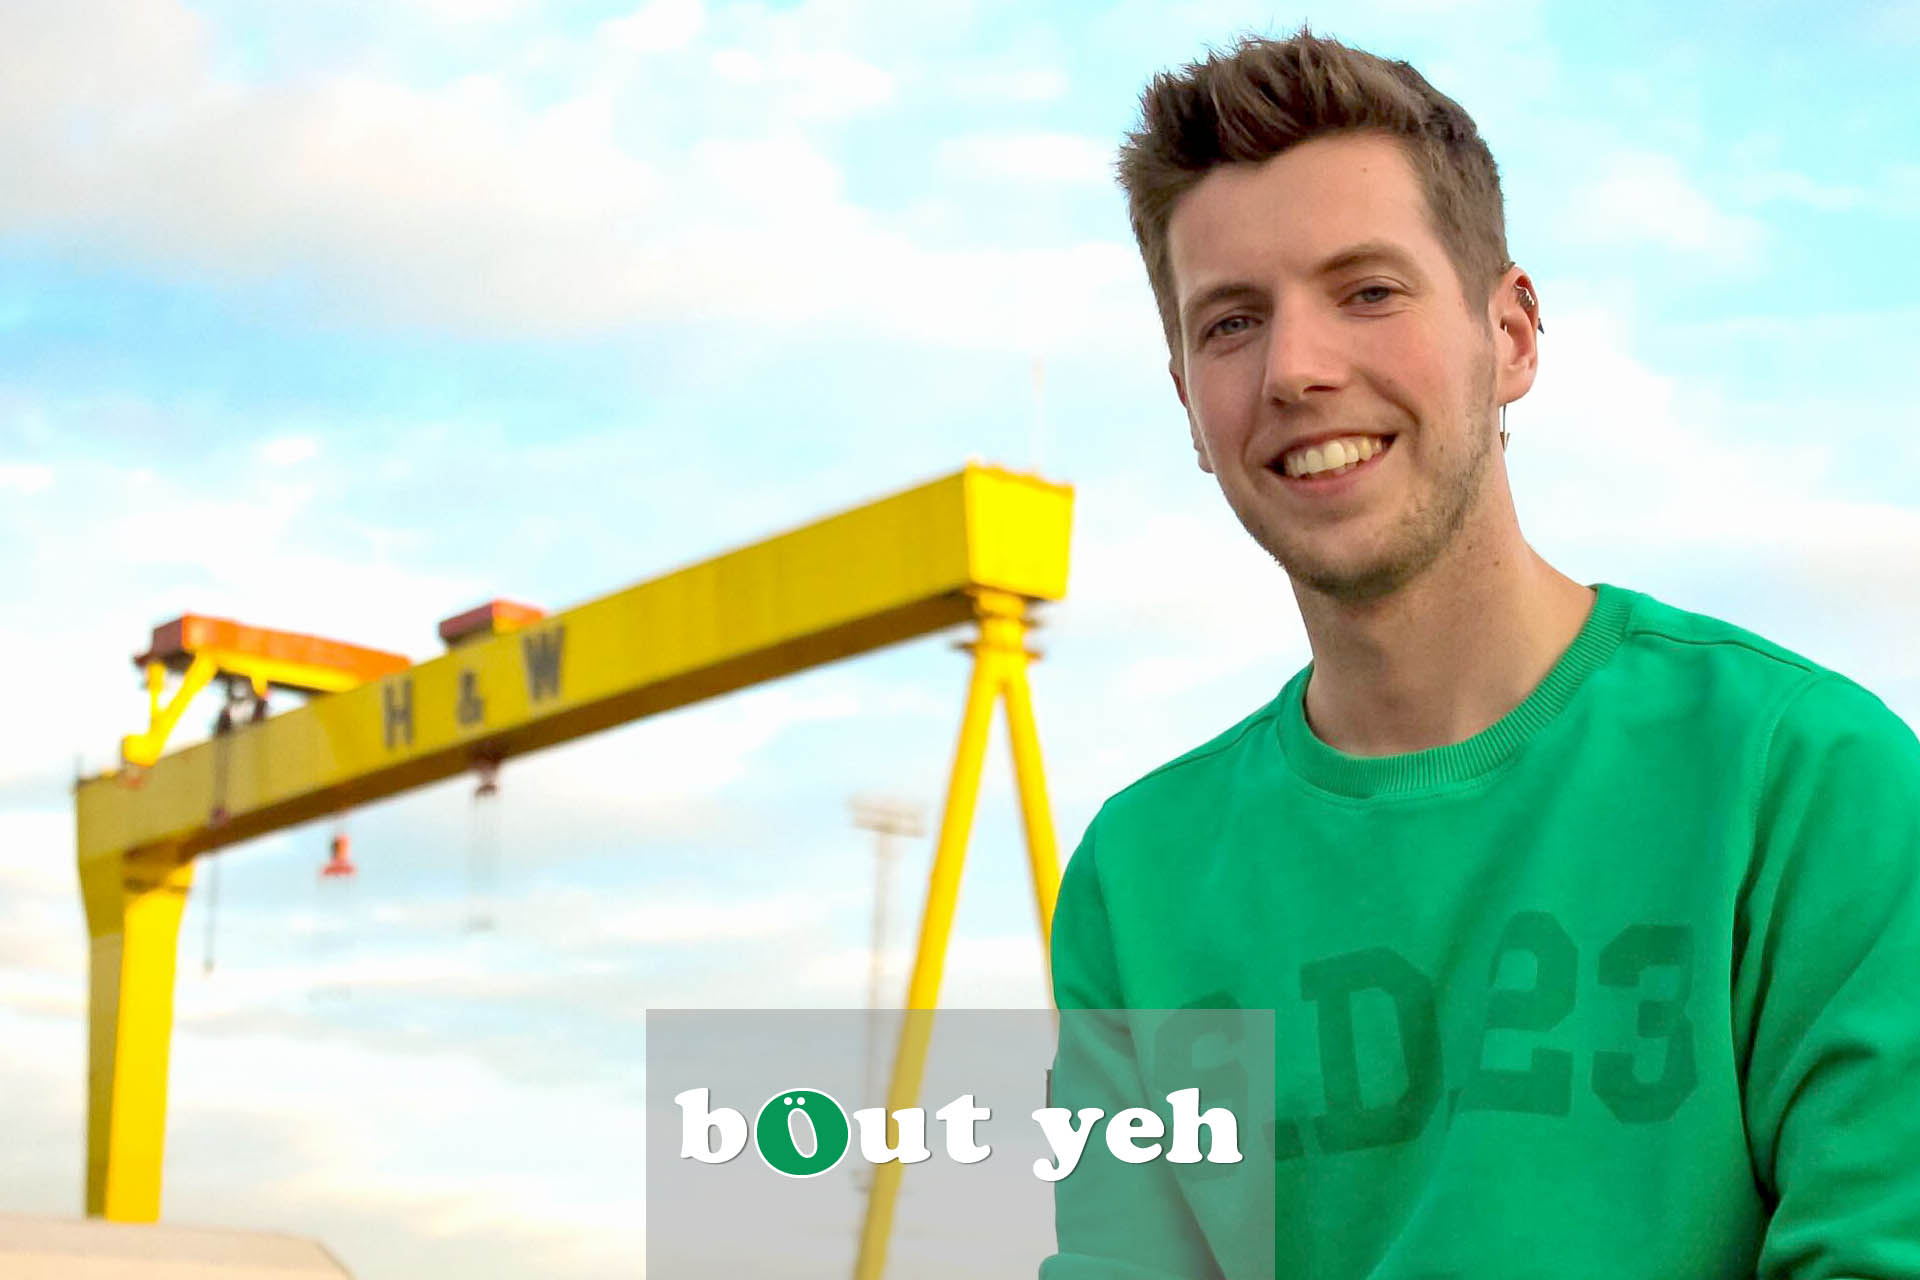 Ryan pictured in front of Harland and Wolff shipyard, Belfast.